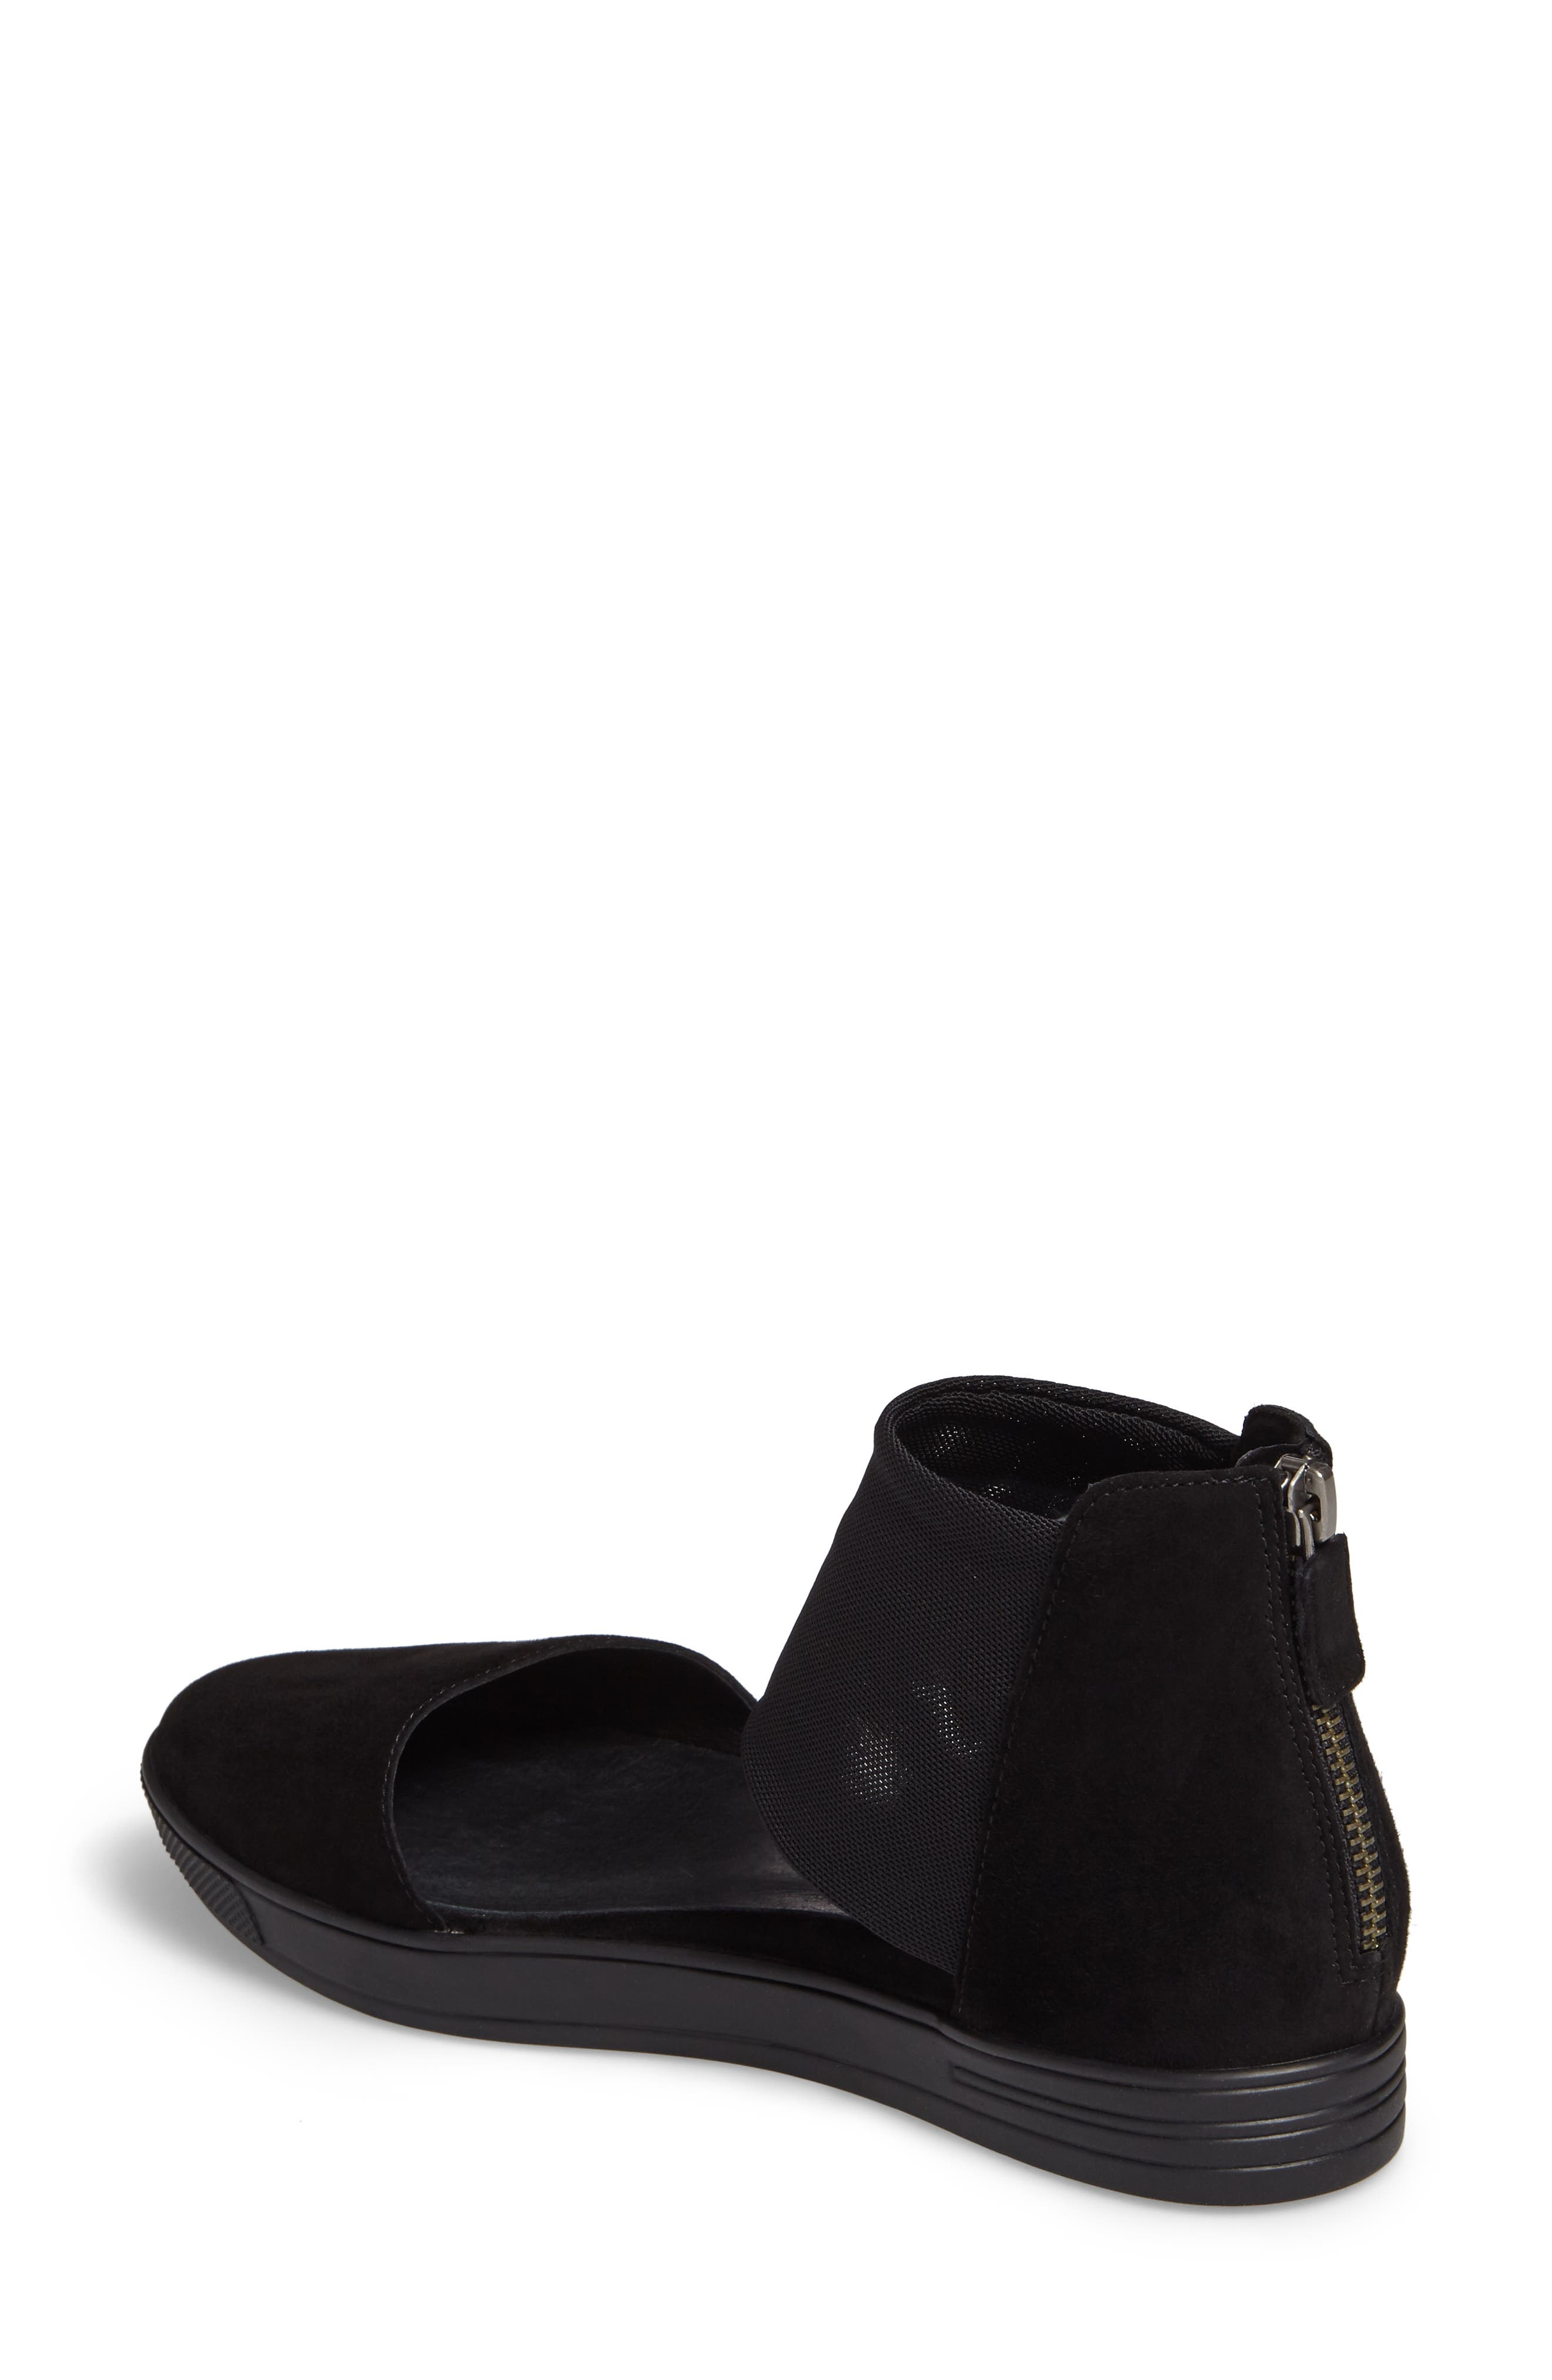 Powell Ankle Cuff Sandal,                             Alternate thumbnail 2, color,                             001